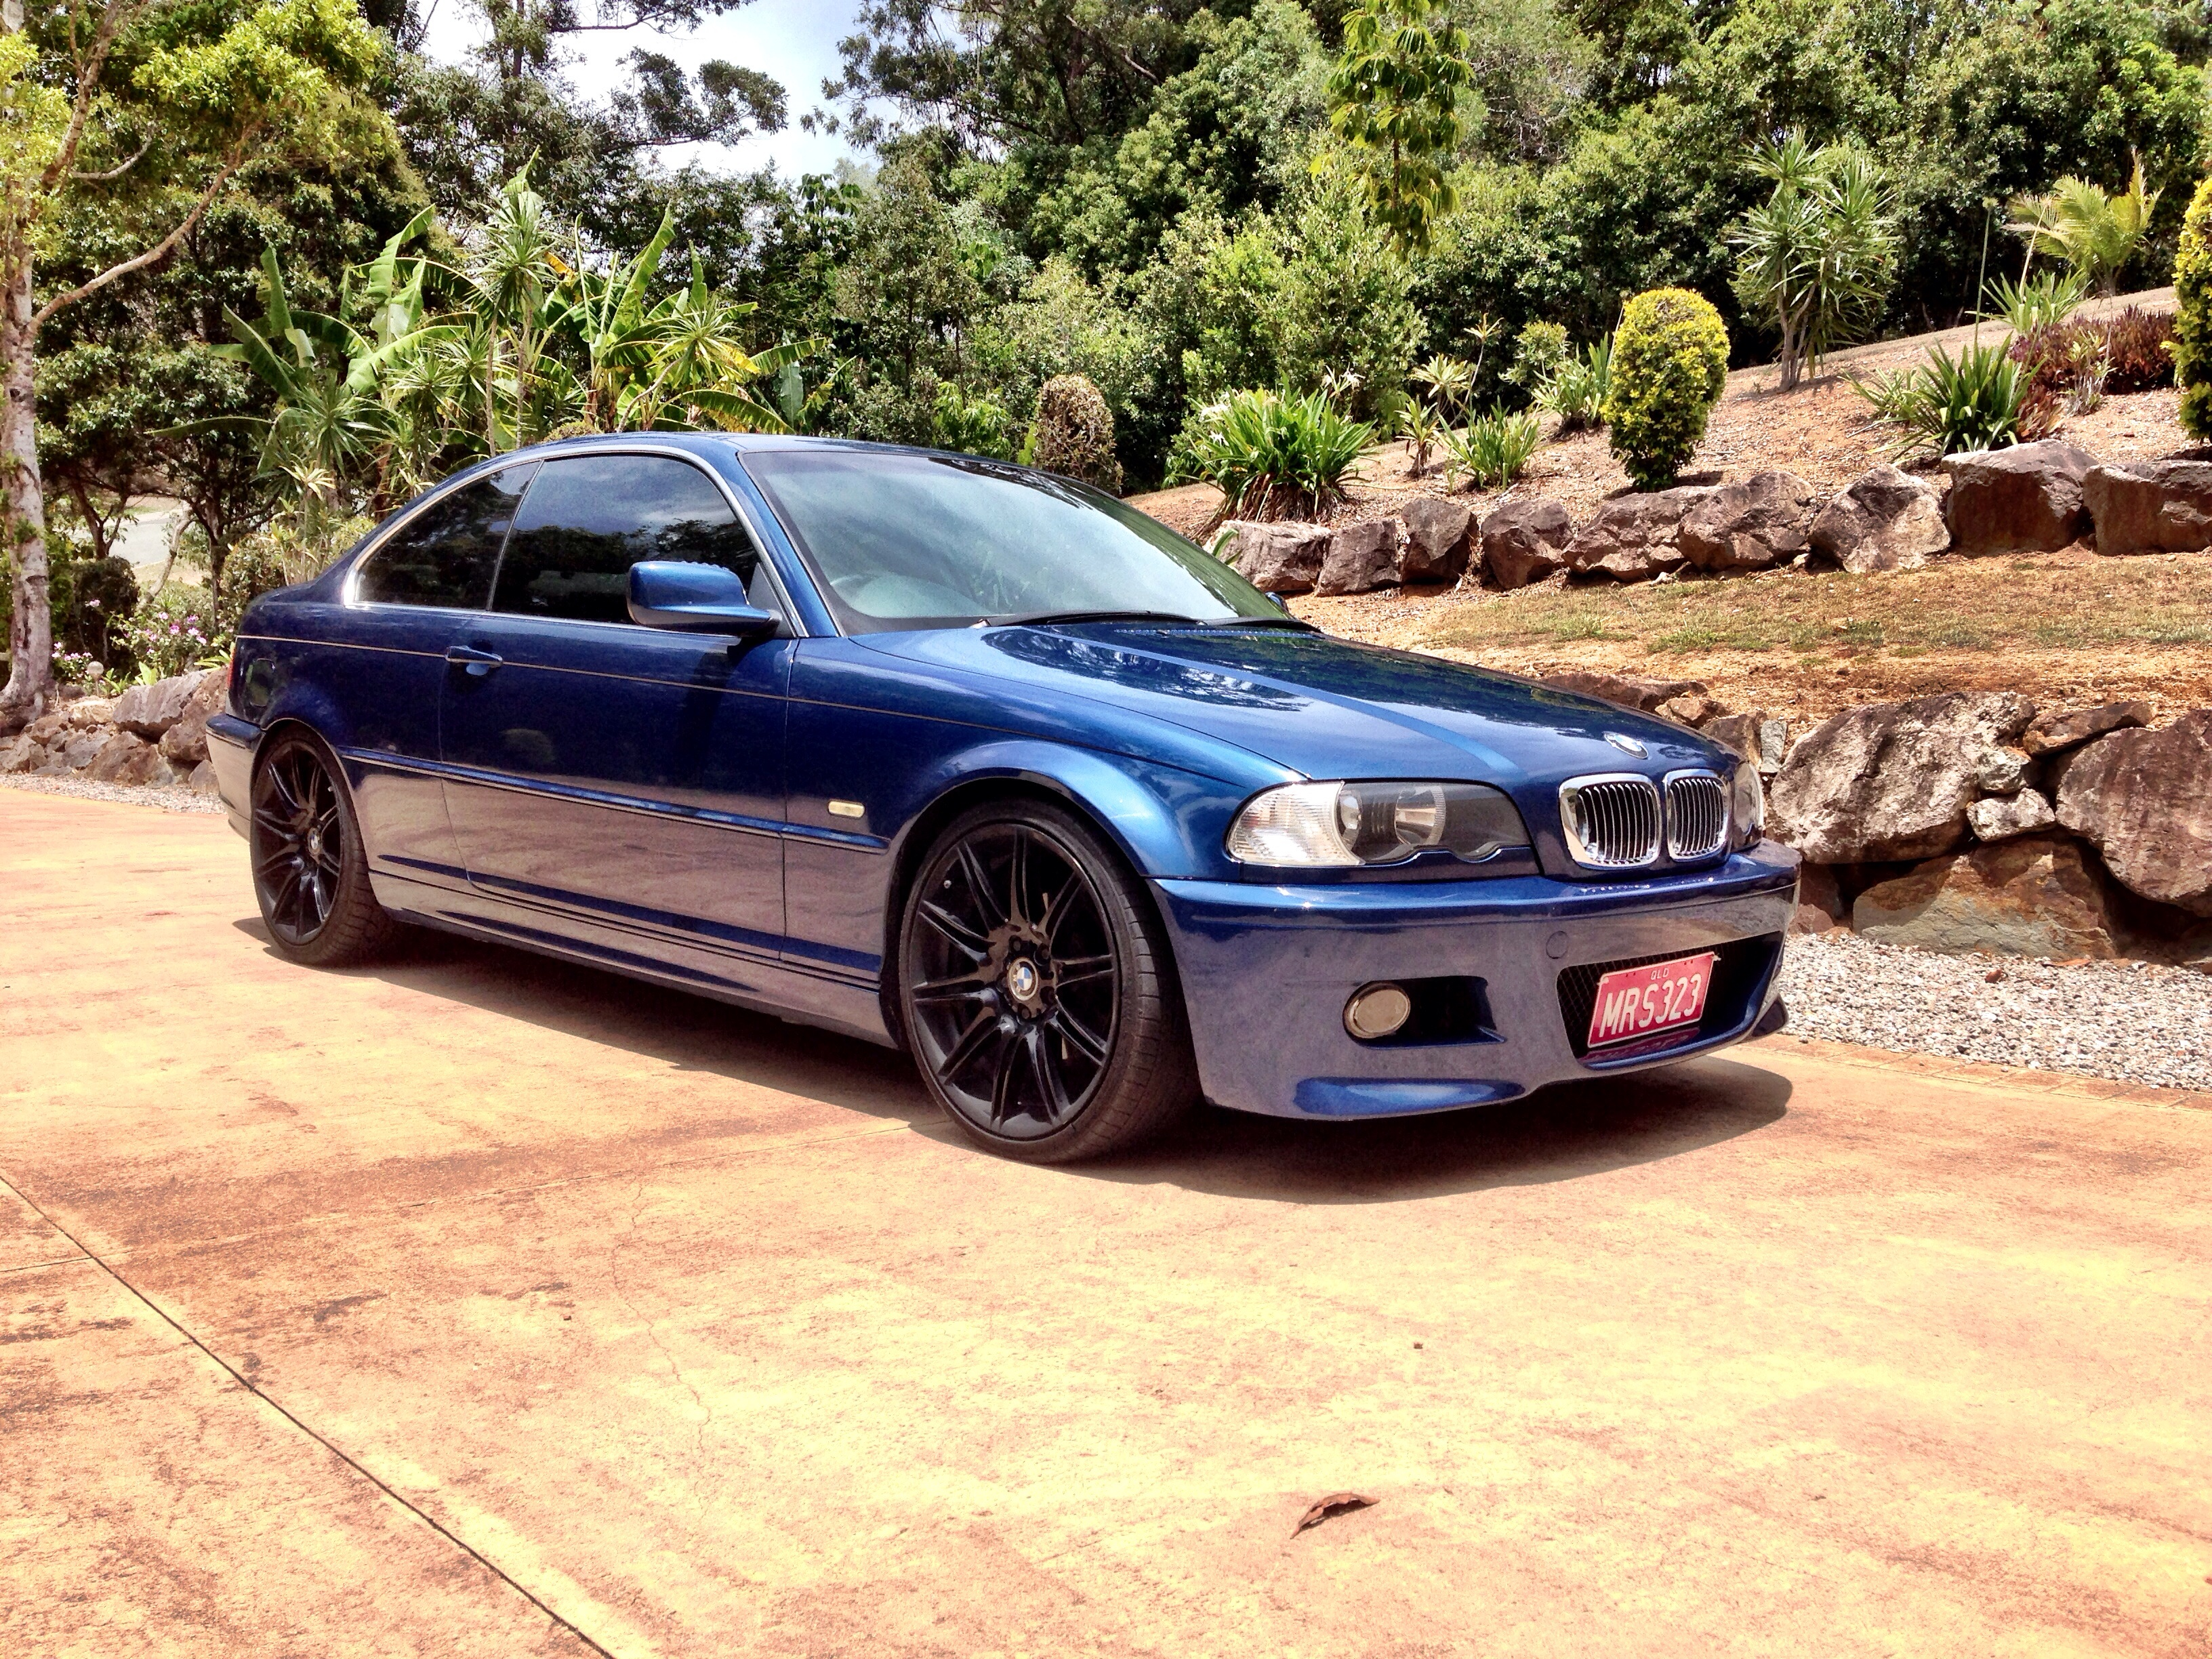 2000 bmw 323ci e46 for sale or swap qld brisbane 2282950. Black Bedroom Furniture Sets. Home Design Ideas